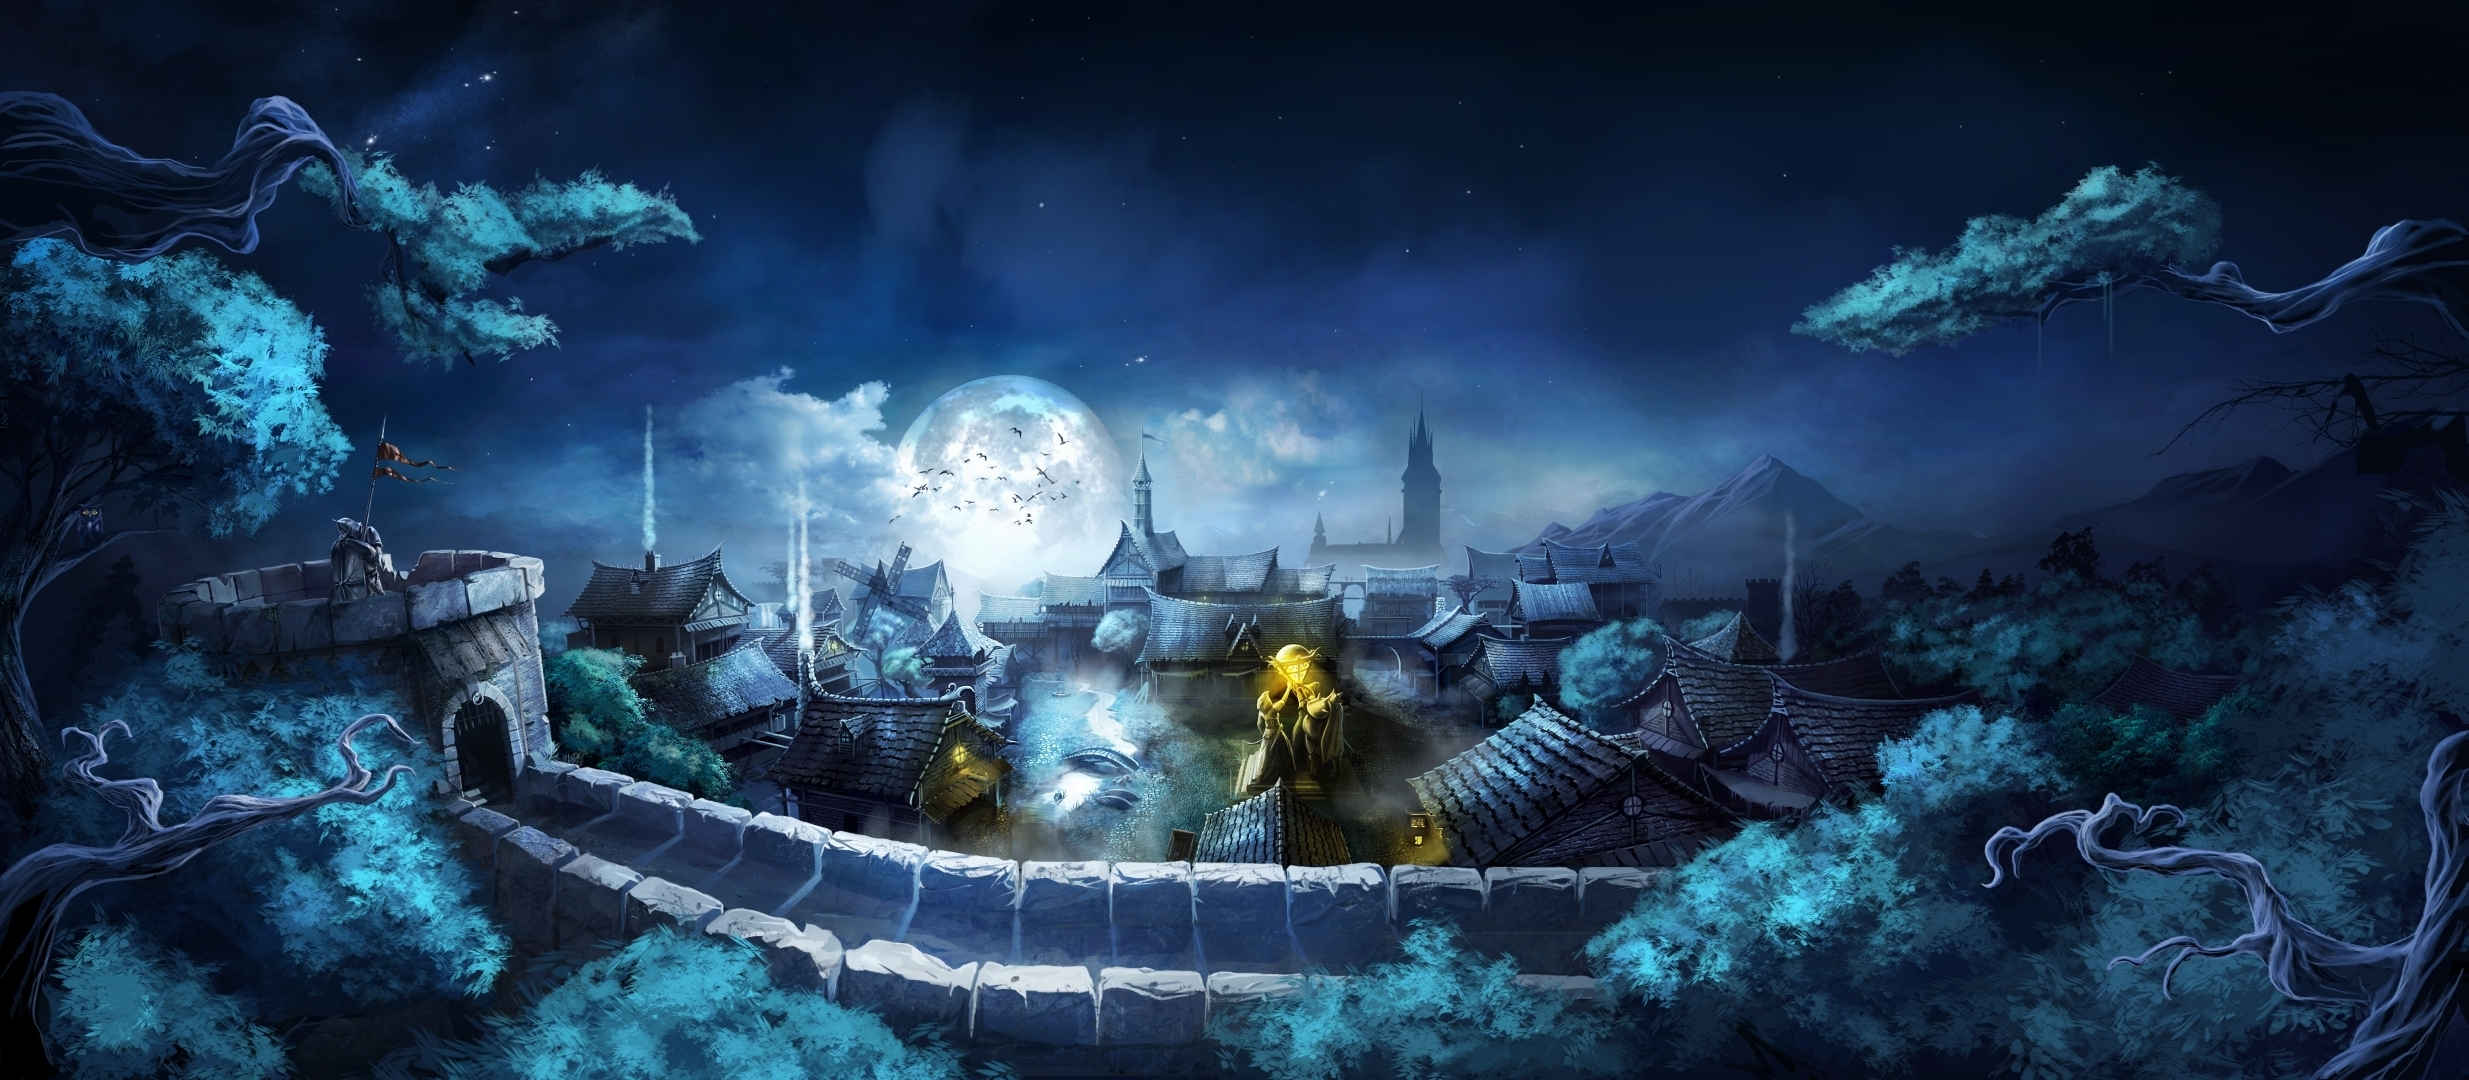 Amazing Trine Pictures & Backgrounds